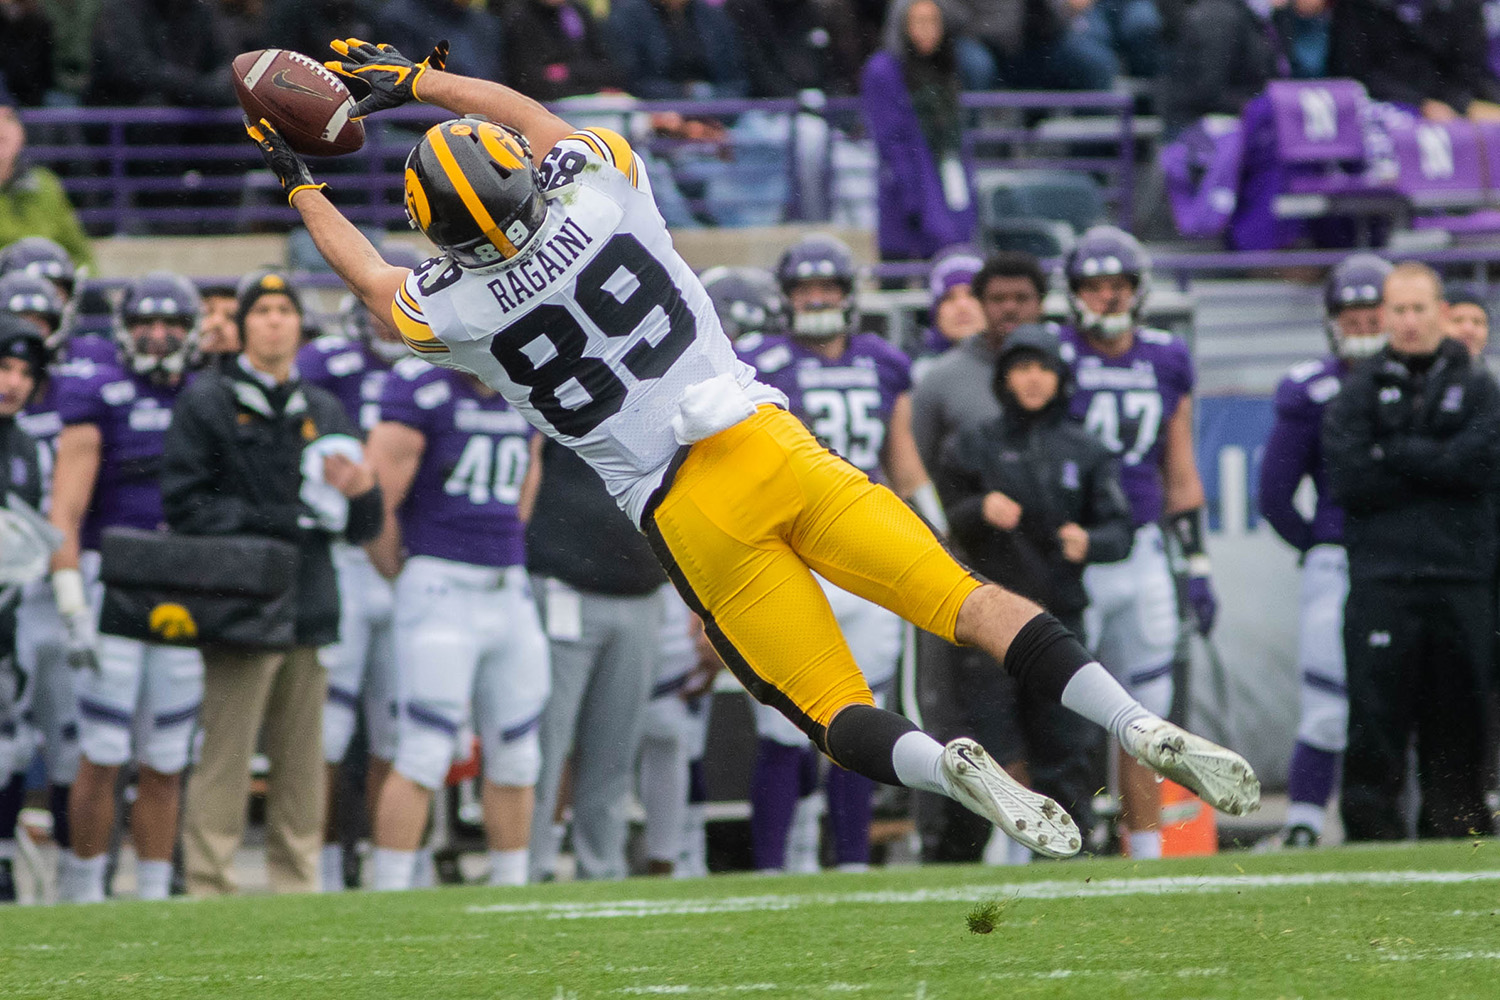 Iowa wide receiver Nico Ragaini catches the ball during a game against Northwestern at Ryan Field on Saturday, October 26, 2019. The Hawkeyes defeated the Wildcats 20-0. Ragiani caught for a total of 4 yards.